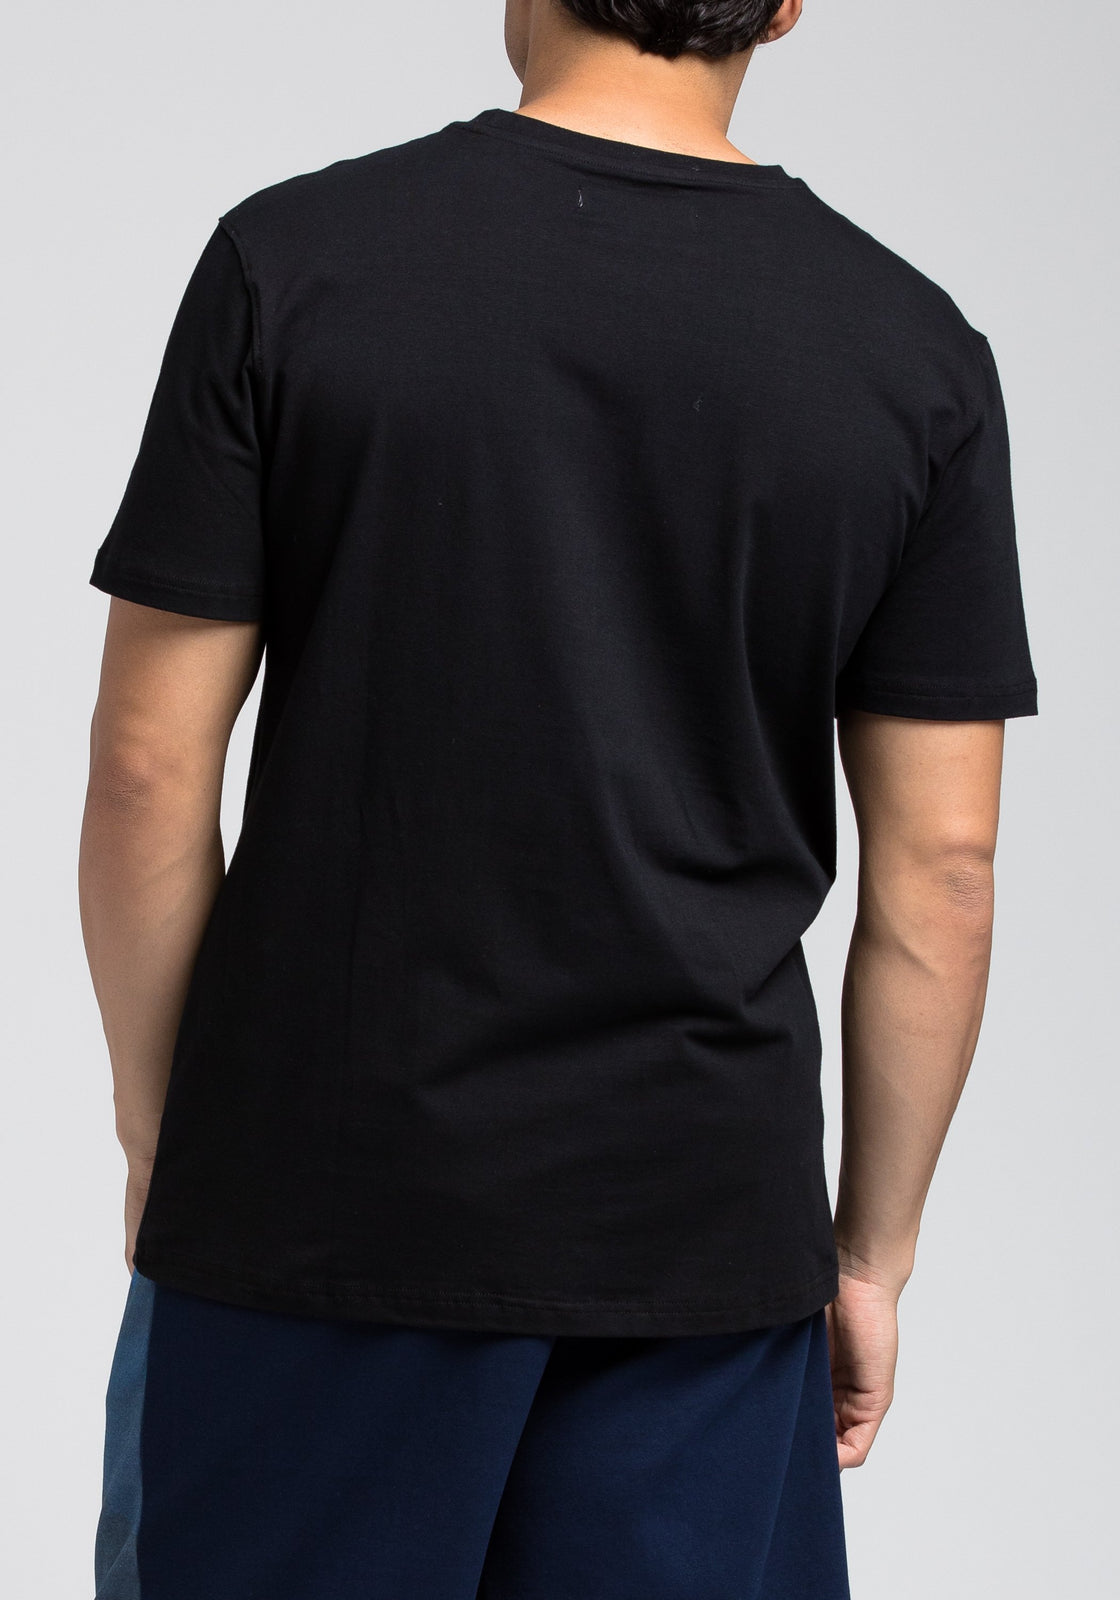 Scuba Mission Tee 2.0 - Color: Black